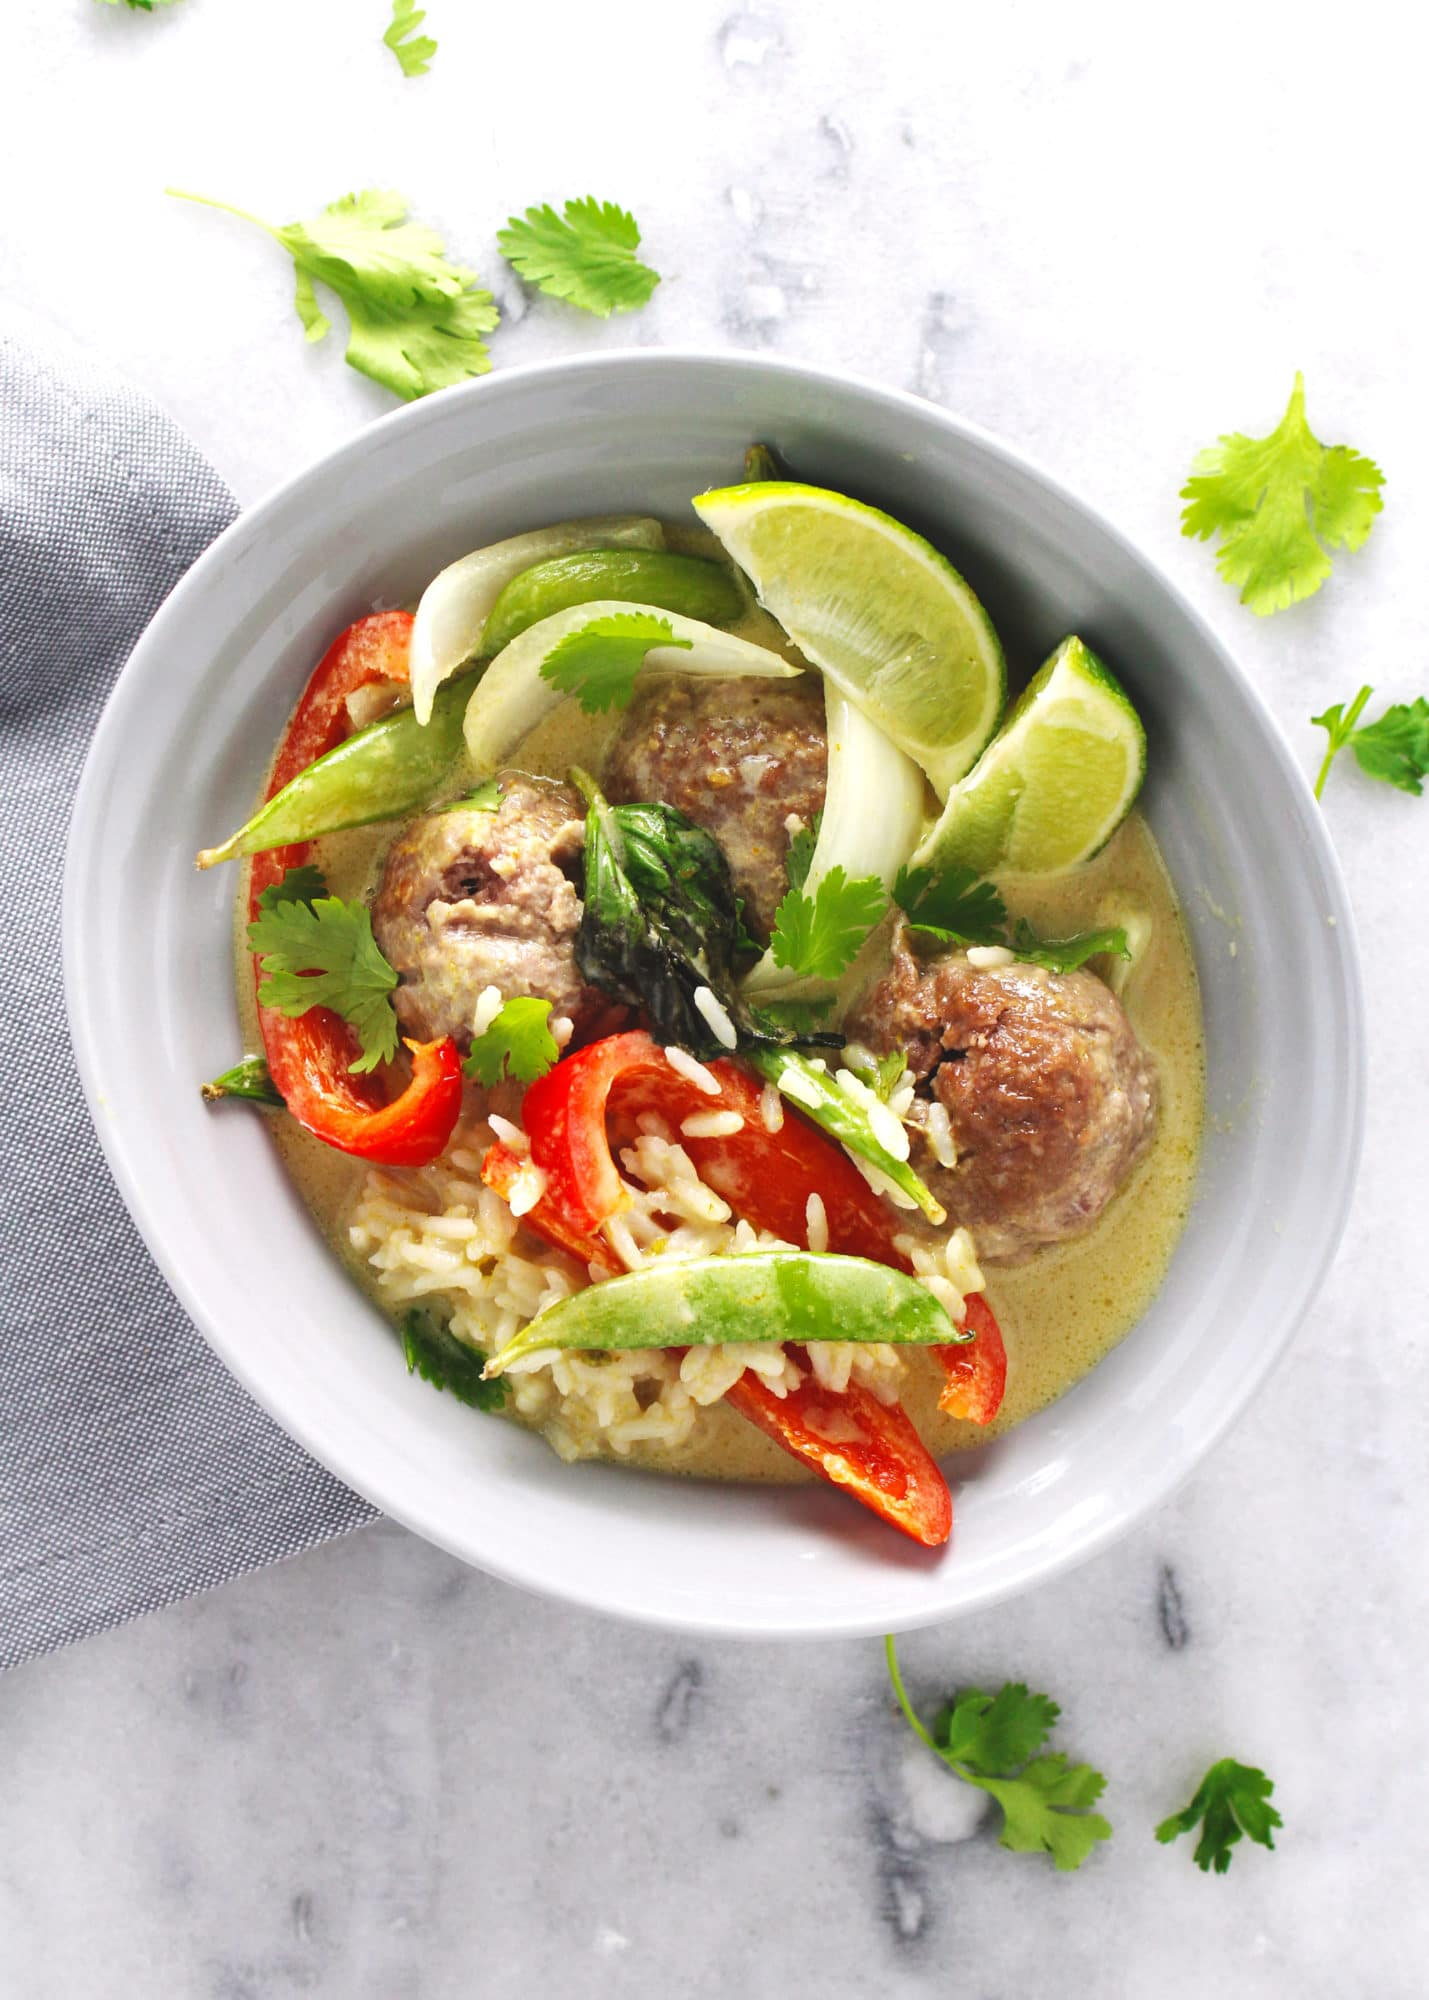 This bright and beautiful one pot meal of Meatballs in Green Curry Sauce is a healthy, gluten-free option for dinner when you want something exciting and may have about an hour to prepare it | via @AimeeMarsLiving | #Meatballs #GreenCurry #OnePot